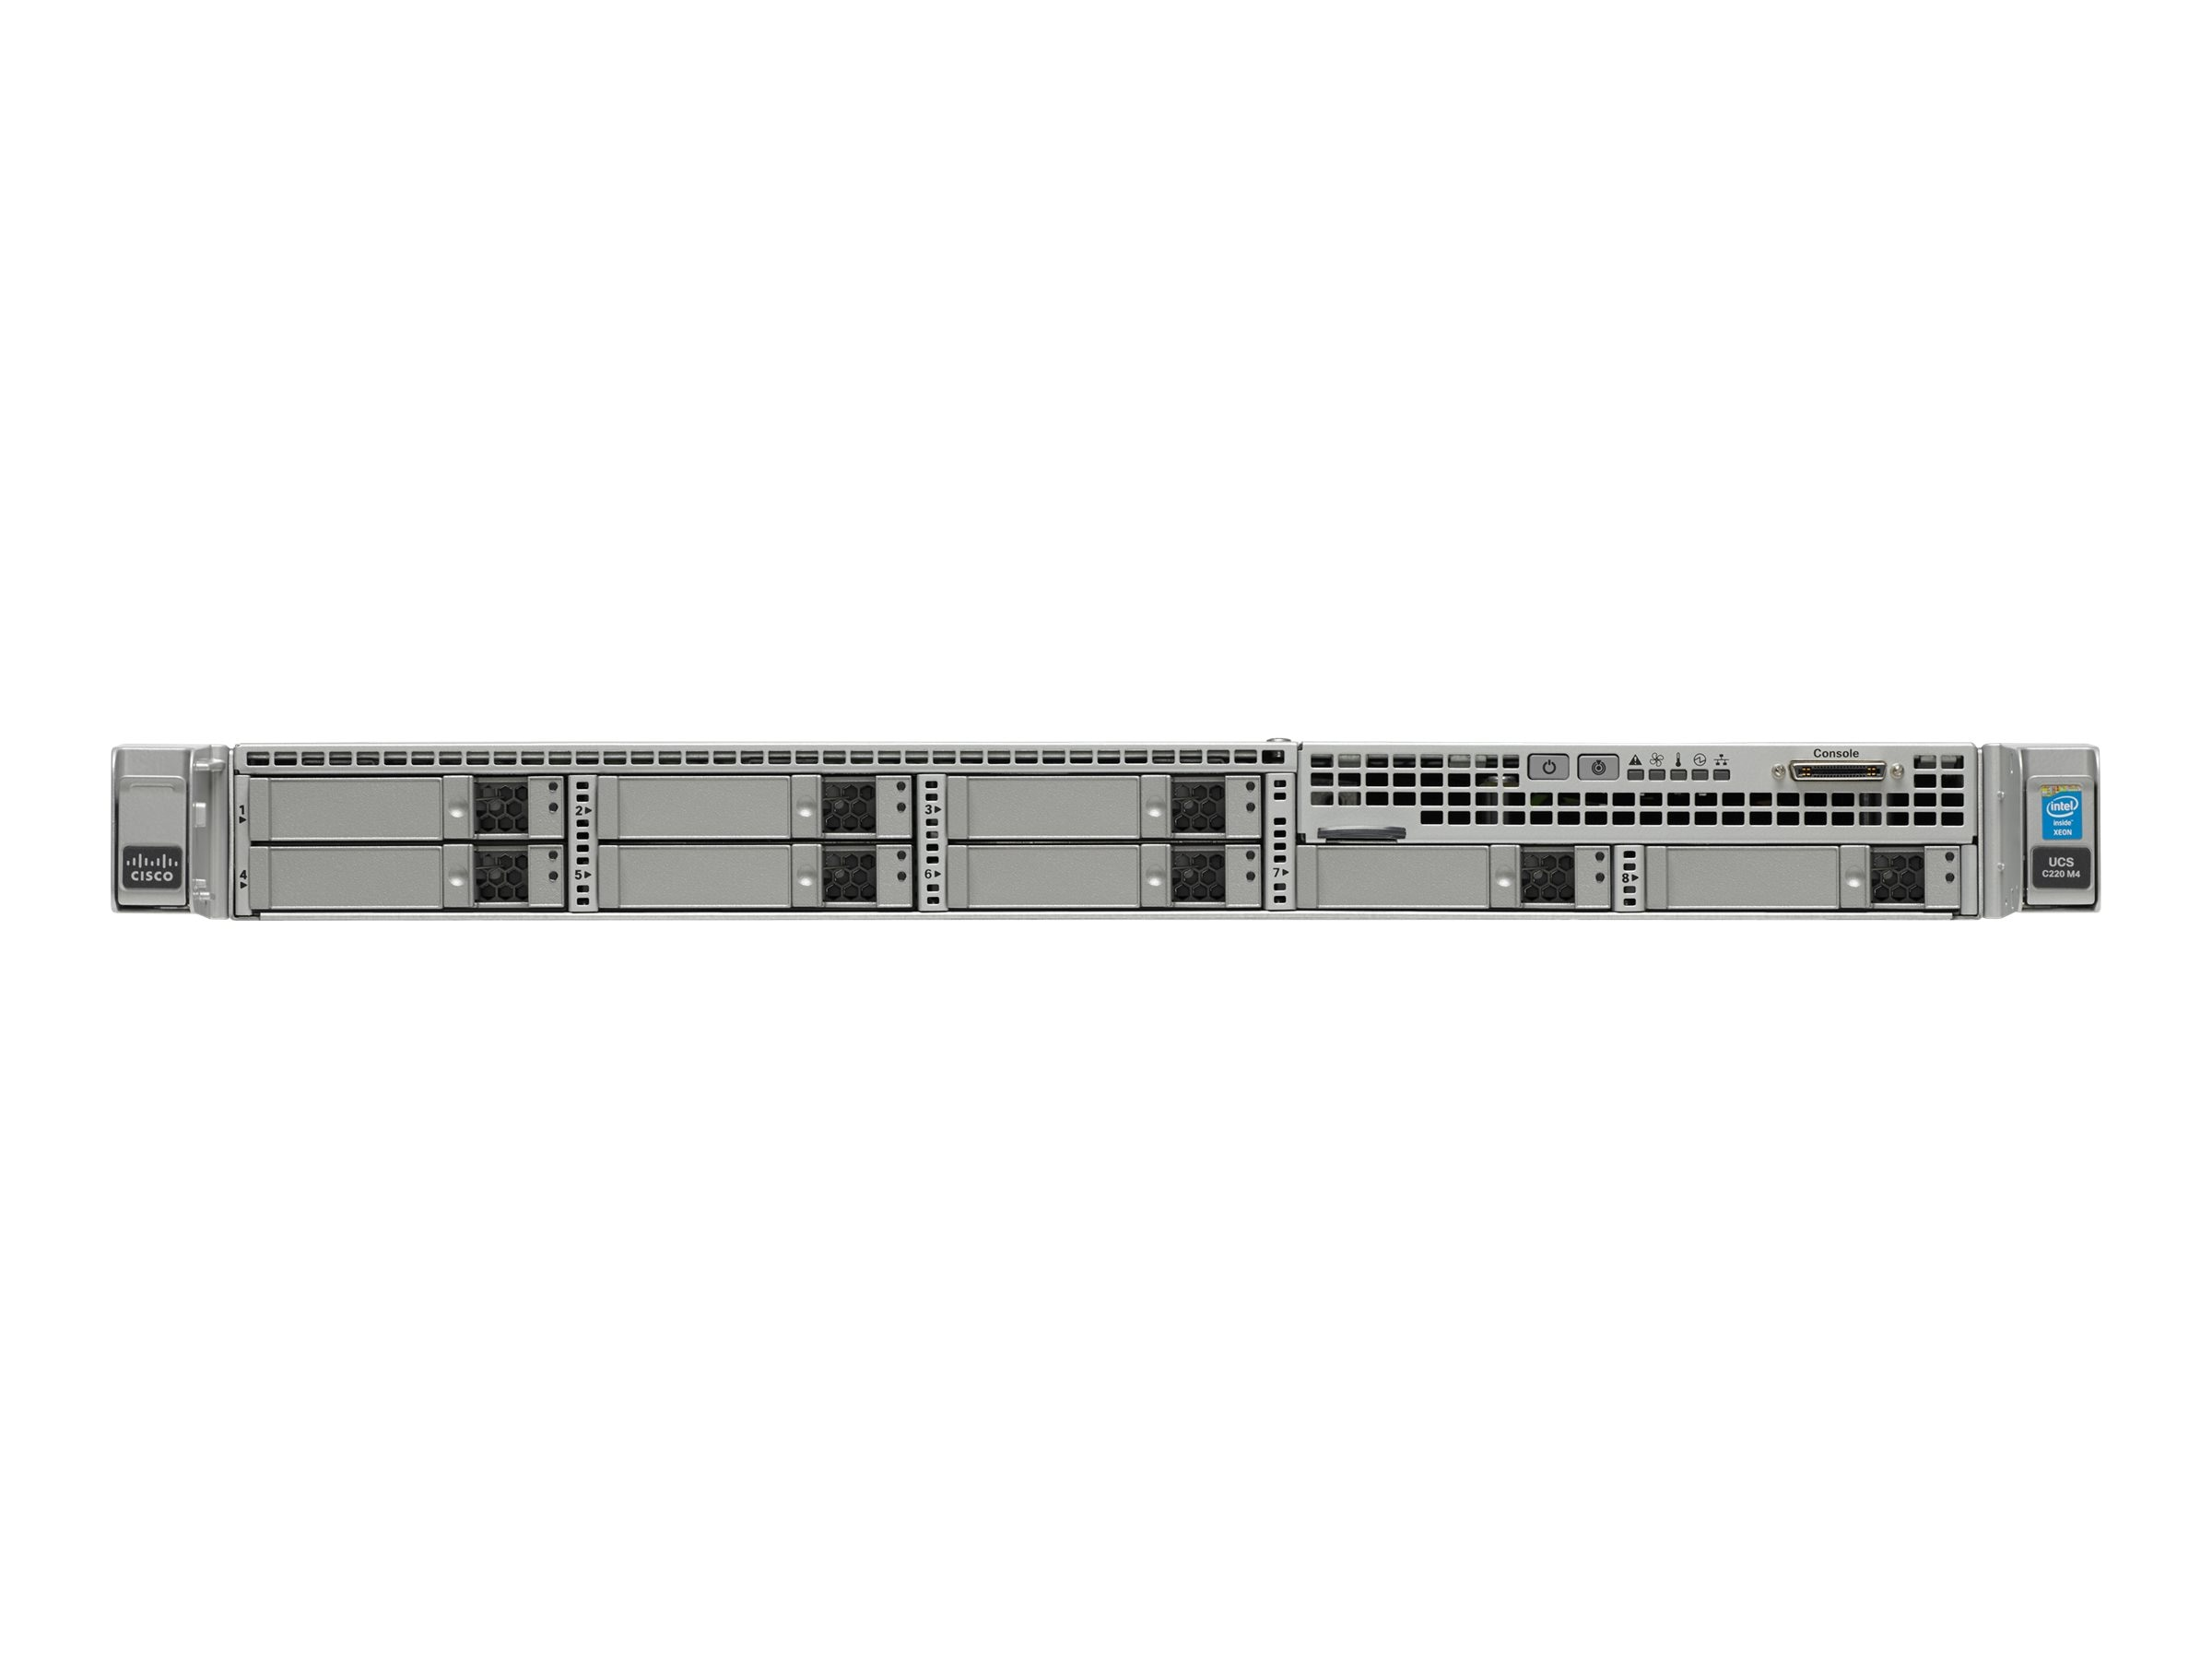 Cisco UCS-SP-C220M4-S2 Image 2